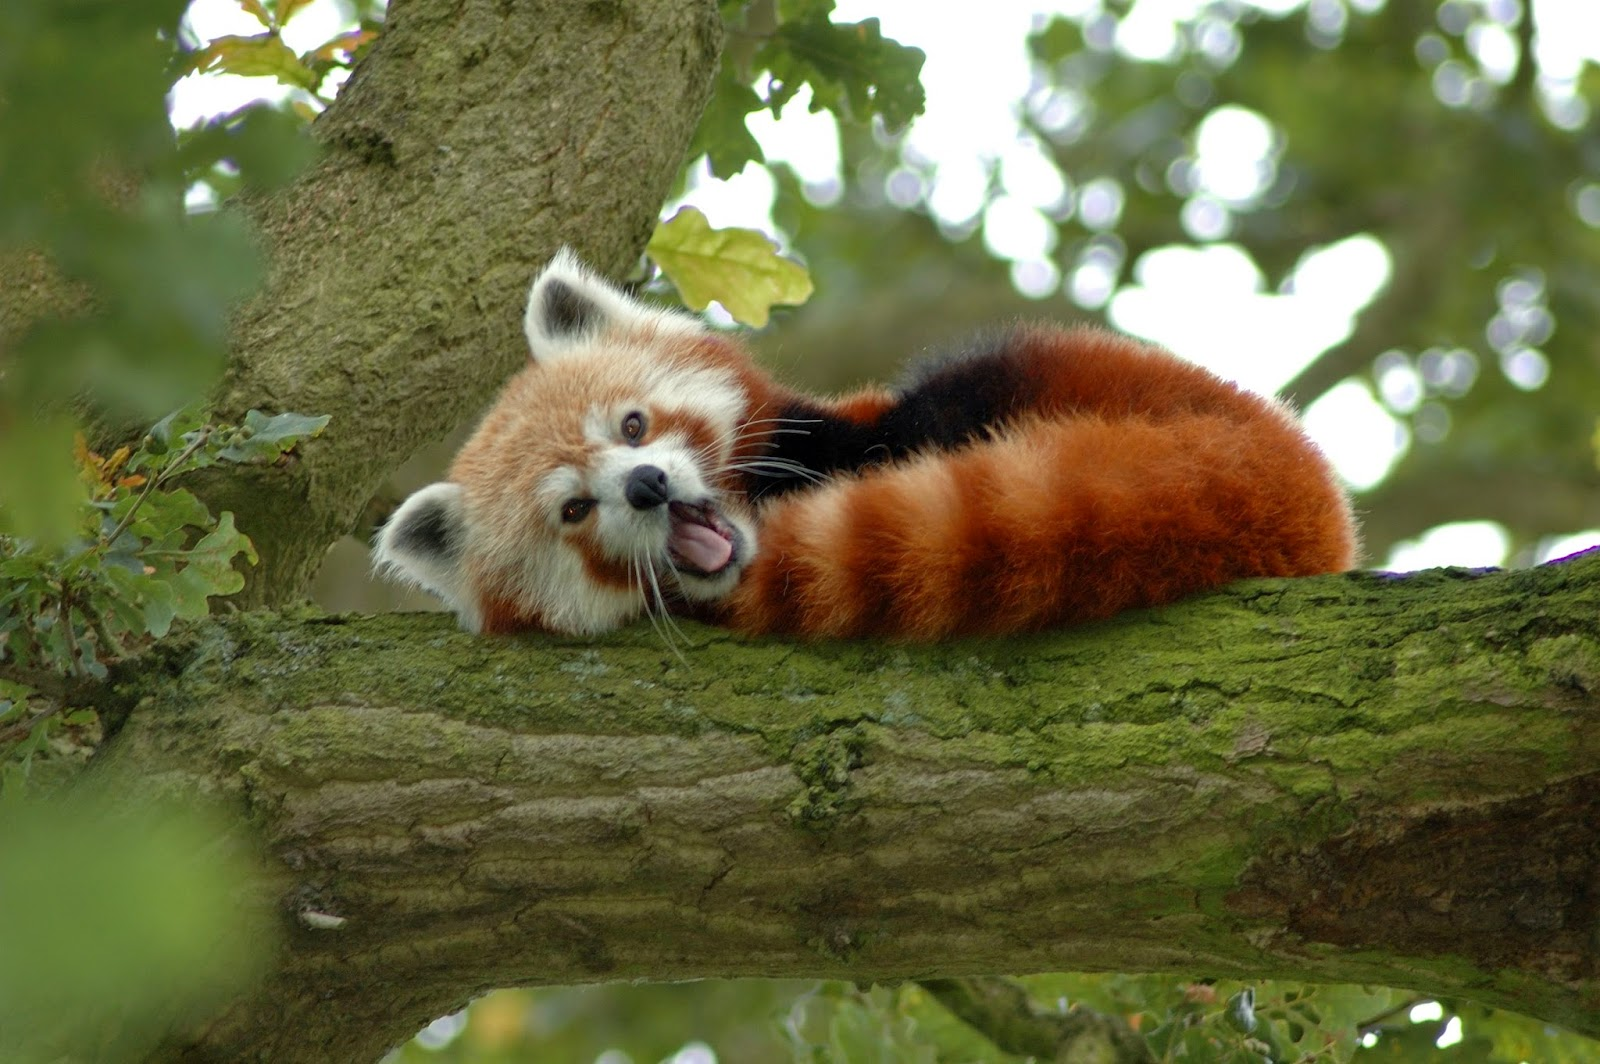 40 Adorable red panda pictures (40 pics), red panda on the tree yawning